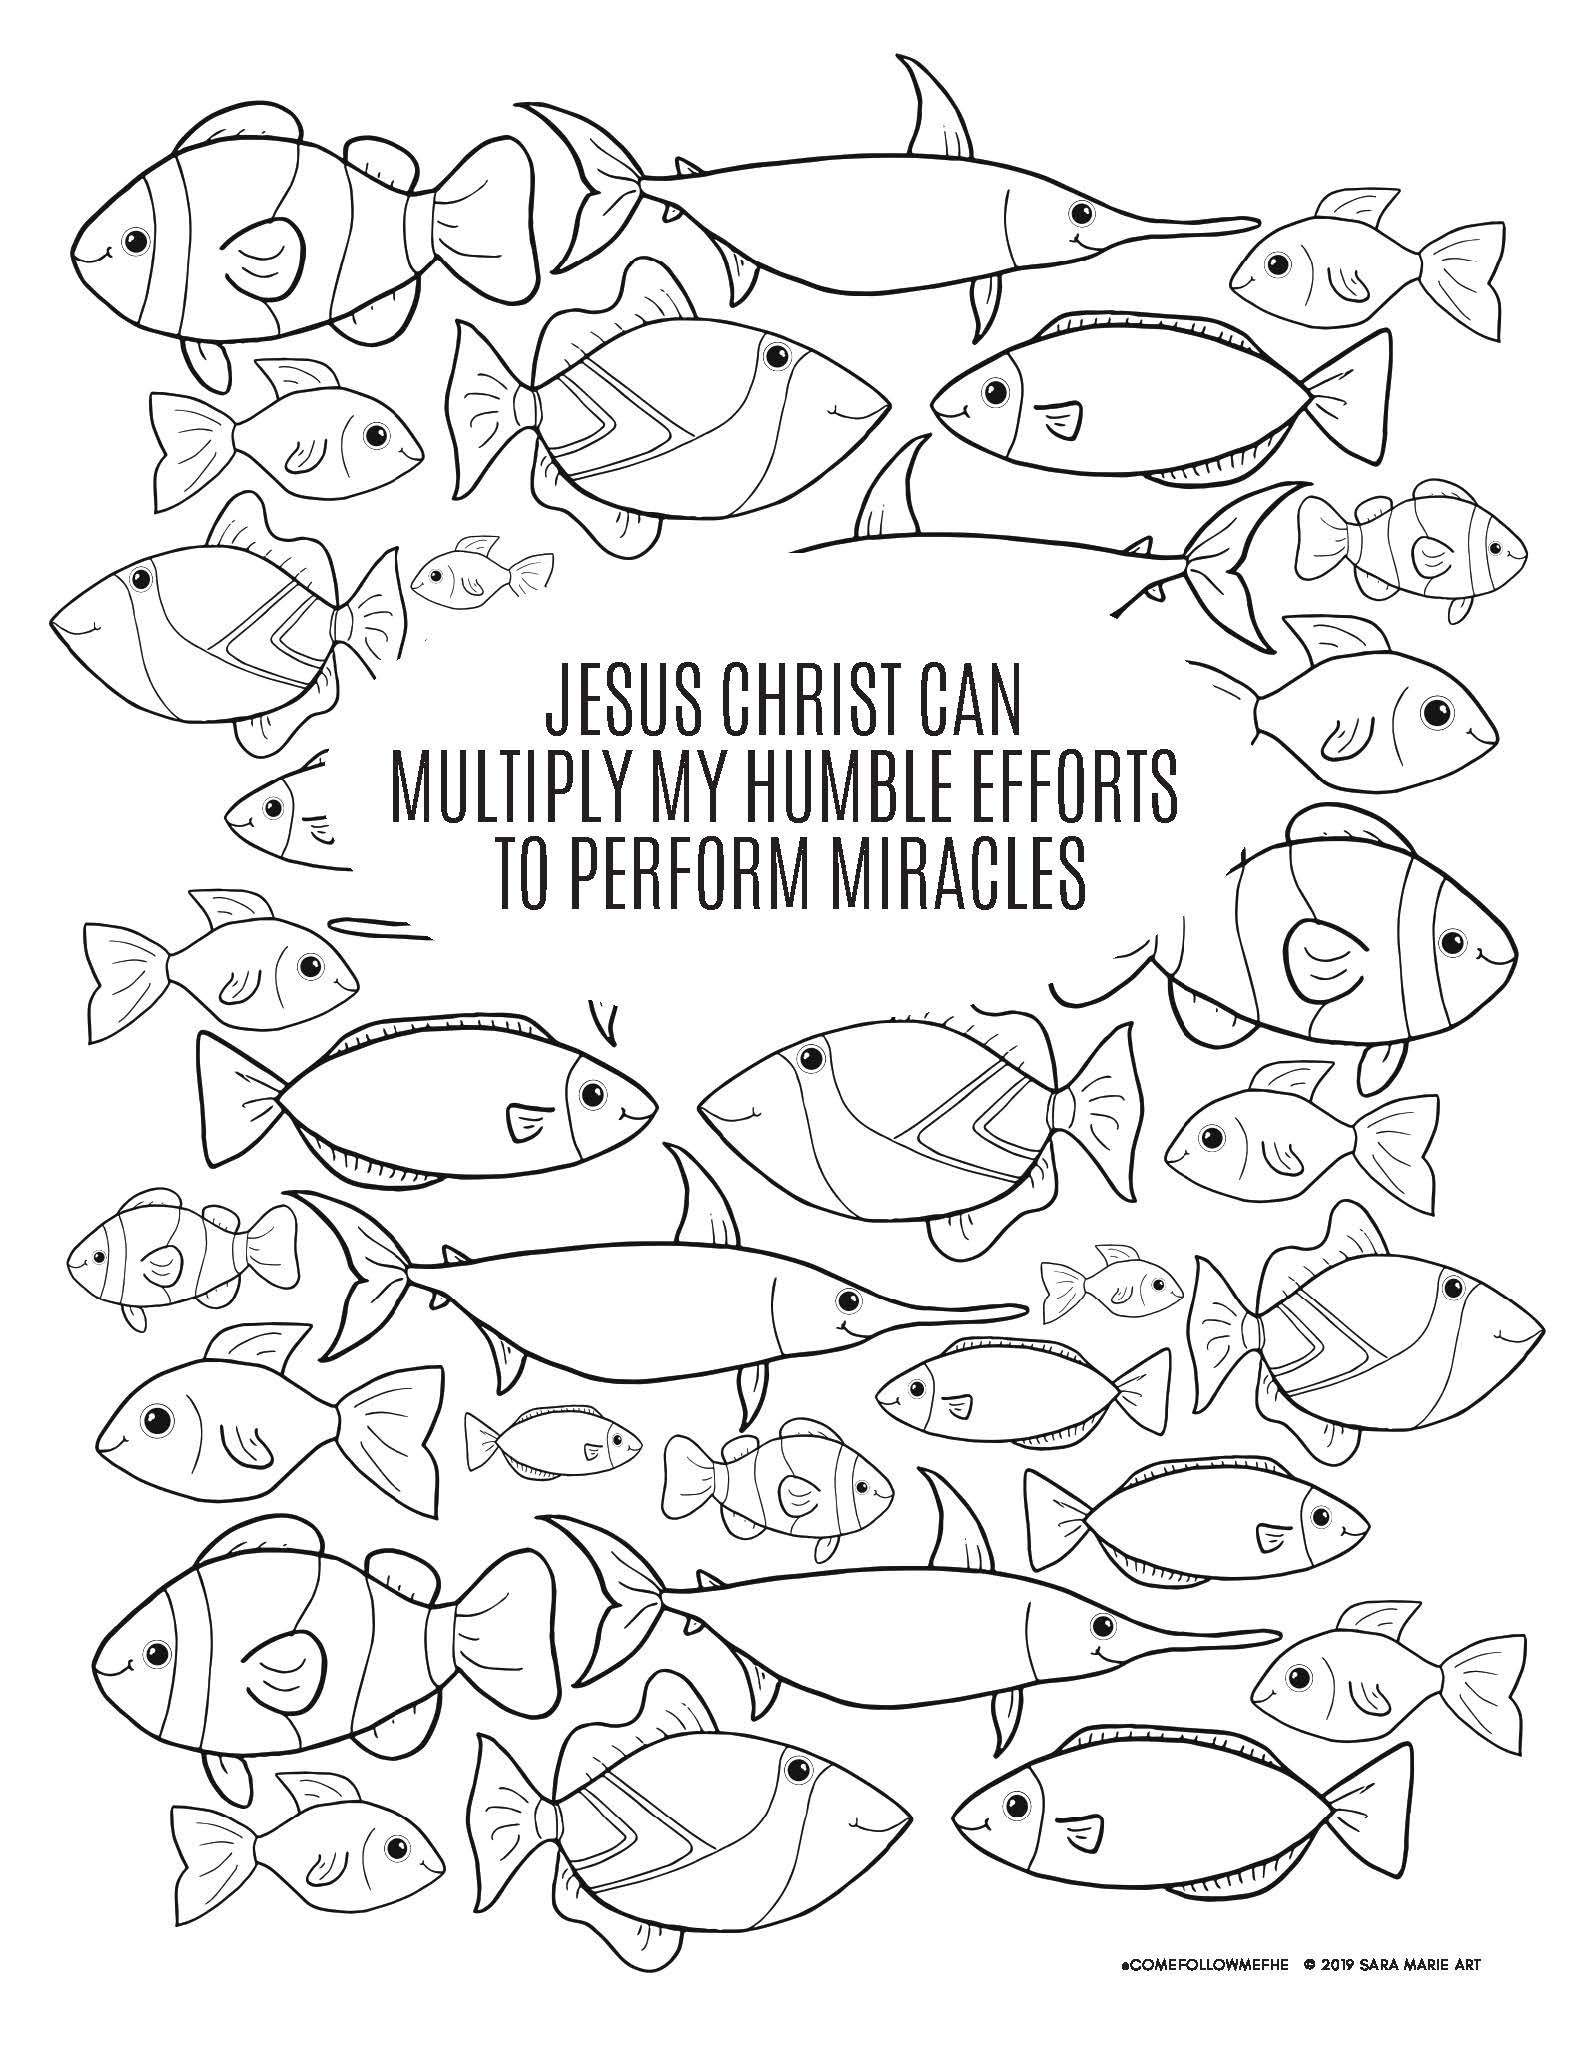 Be Not Afraid Loaves Fishes Bible Coloring Pages Lds